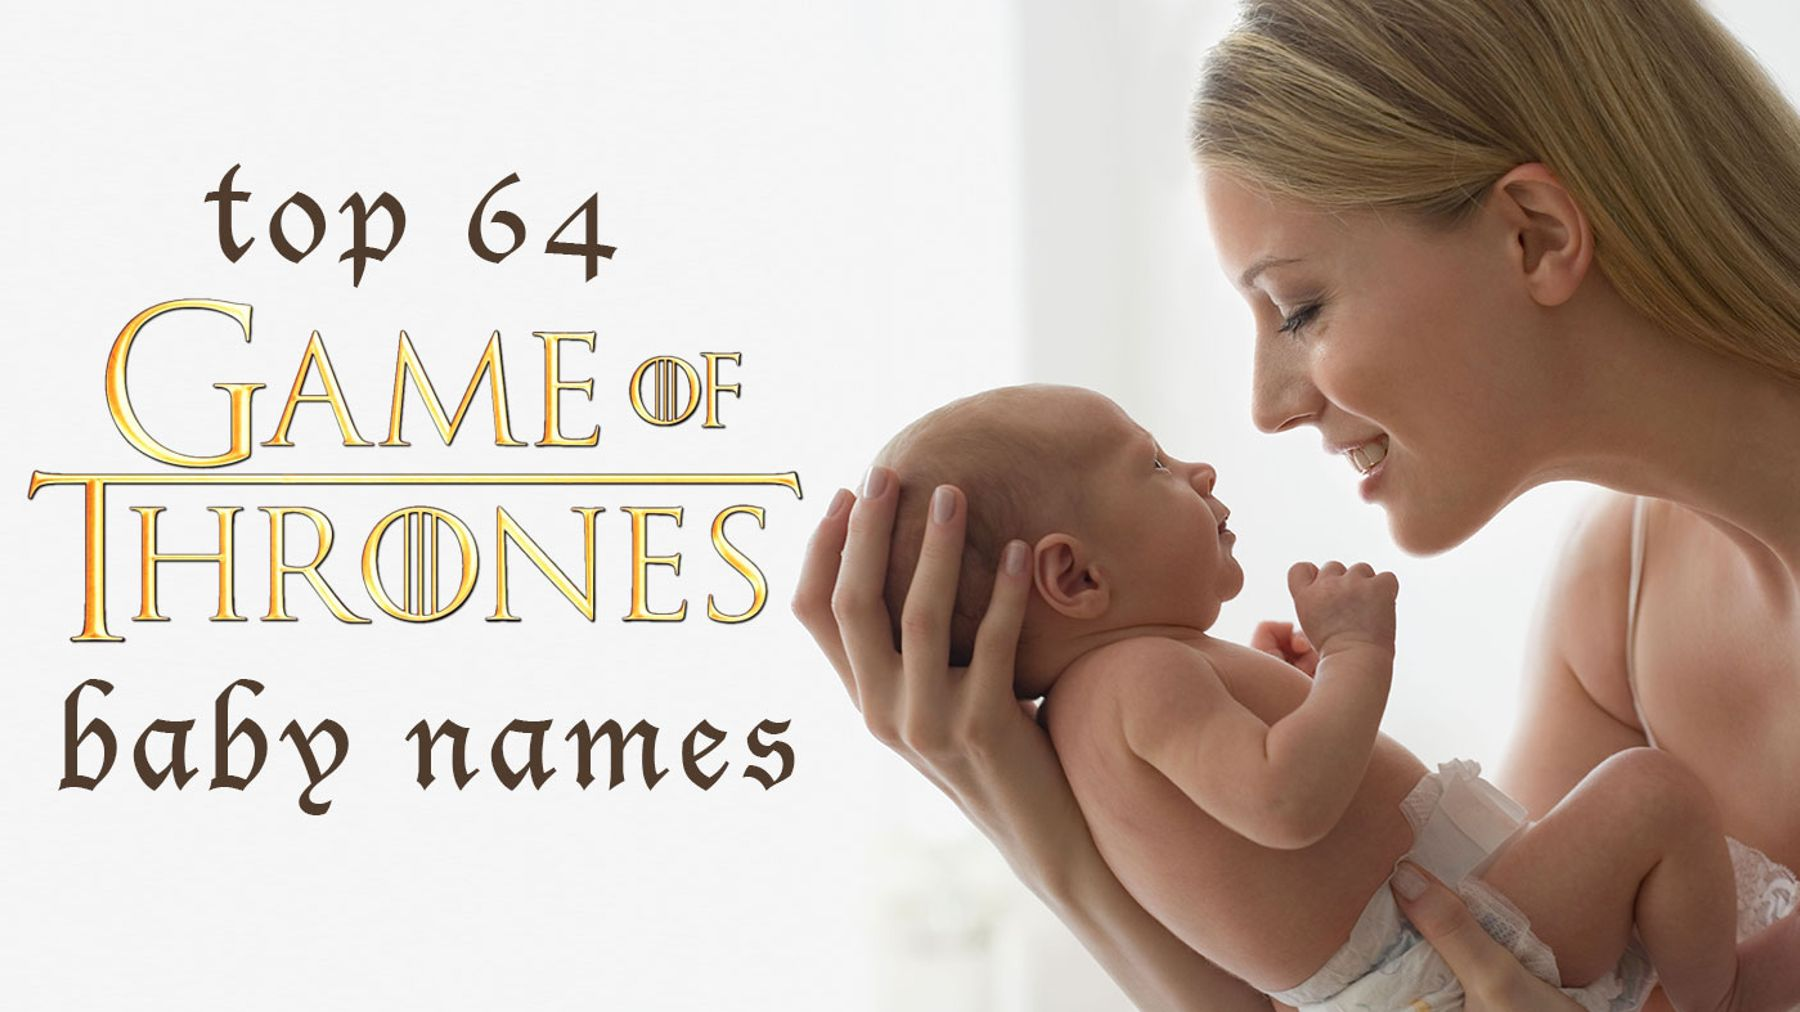 Baby name inspiration: Top 64 Game of Thrones baby names